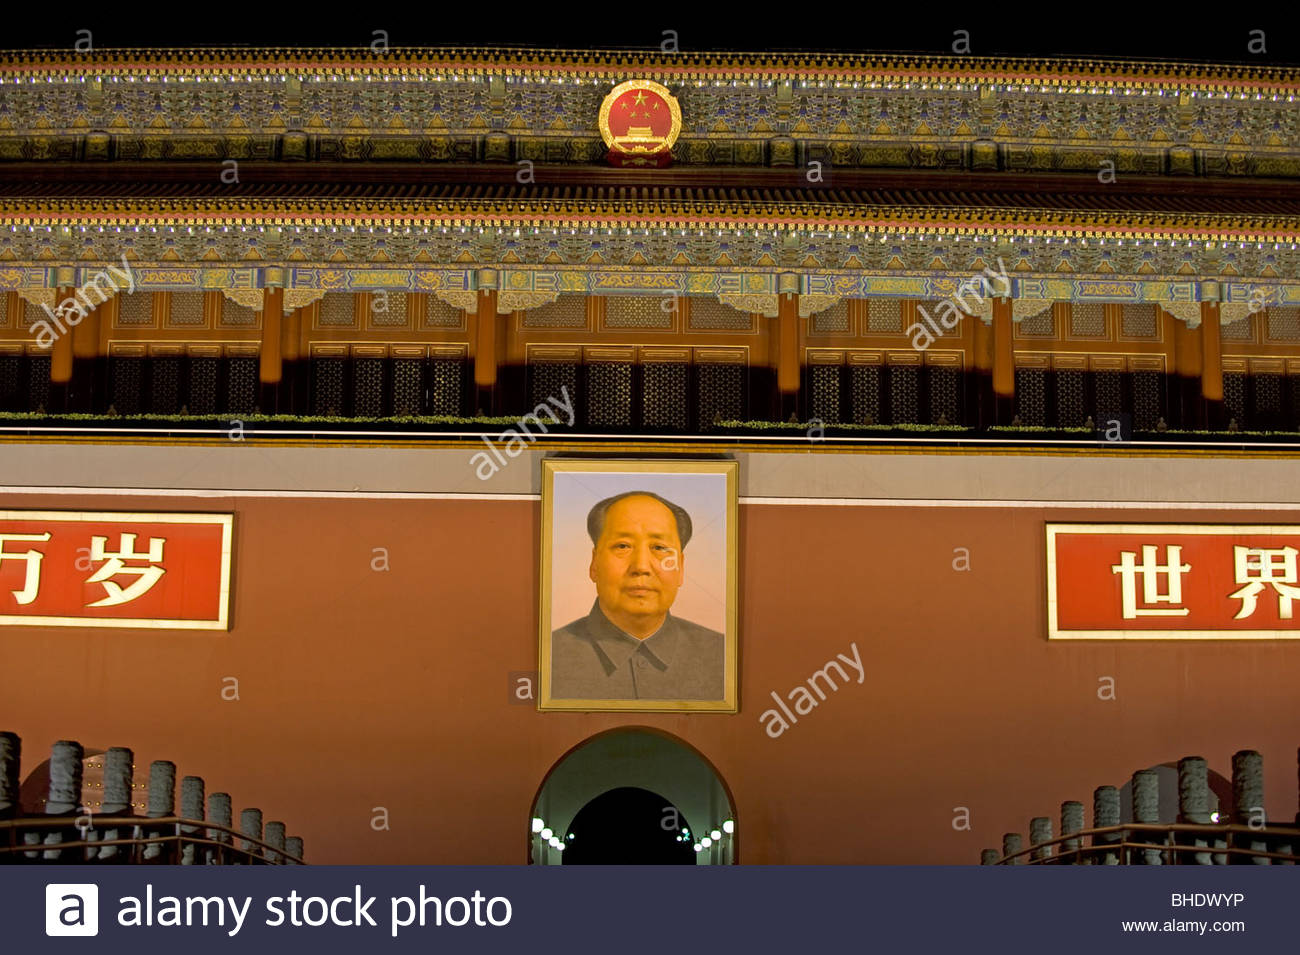 Mao Zedong's memorial on Tiananmen square. Beijing, china - Stock Image